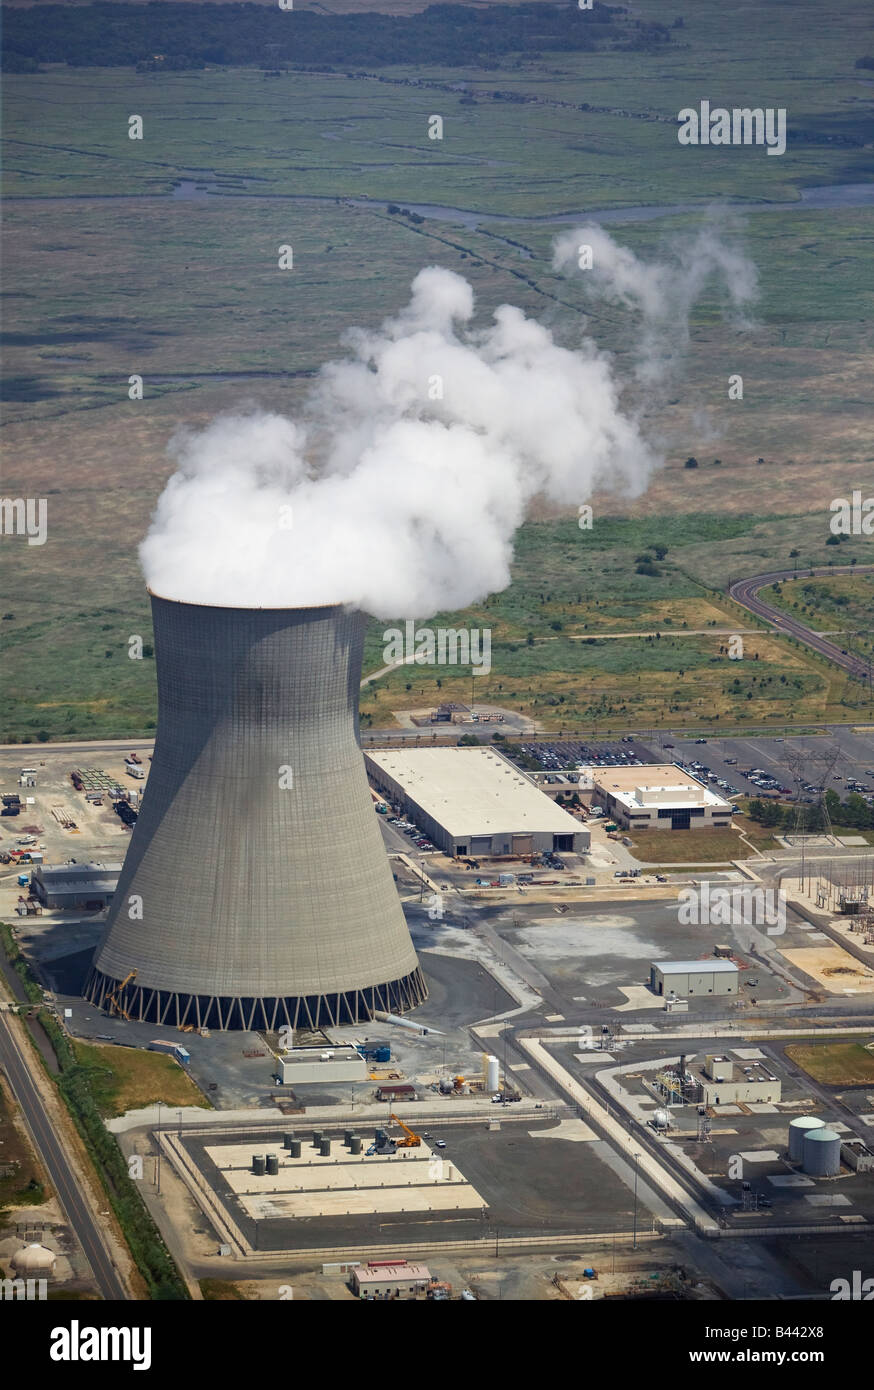 aerial view above the Hope Creek nuclear power plant PSEG Nuclear LLC Lower Alloways  New Jersey - Stock Image